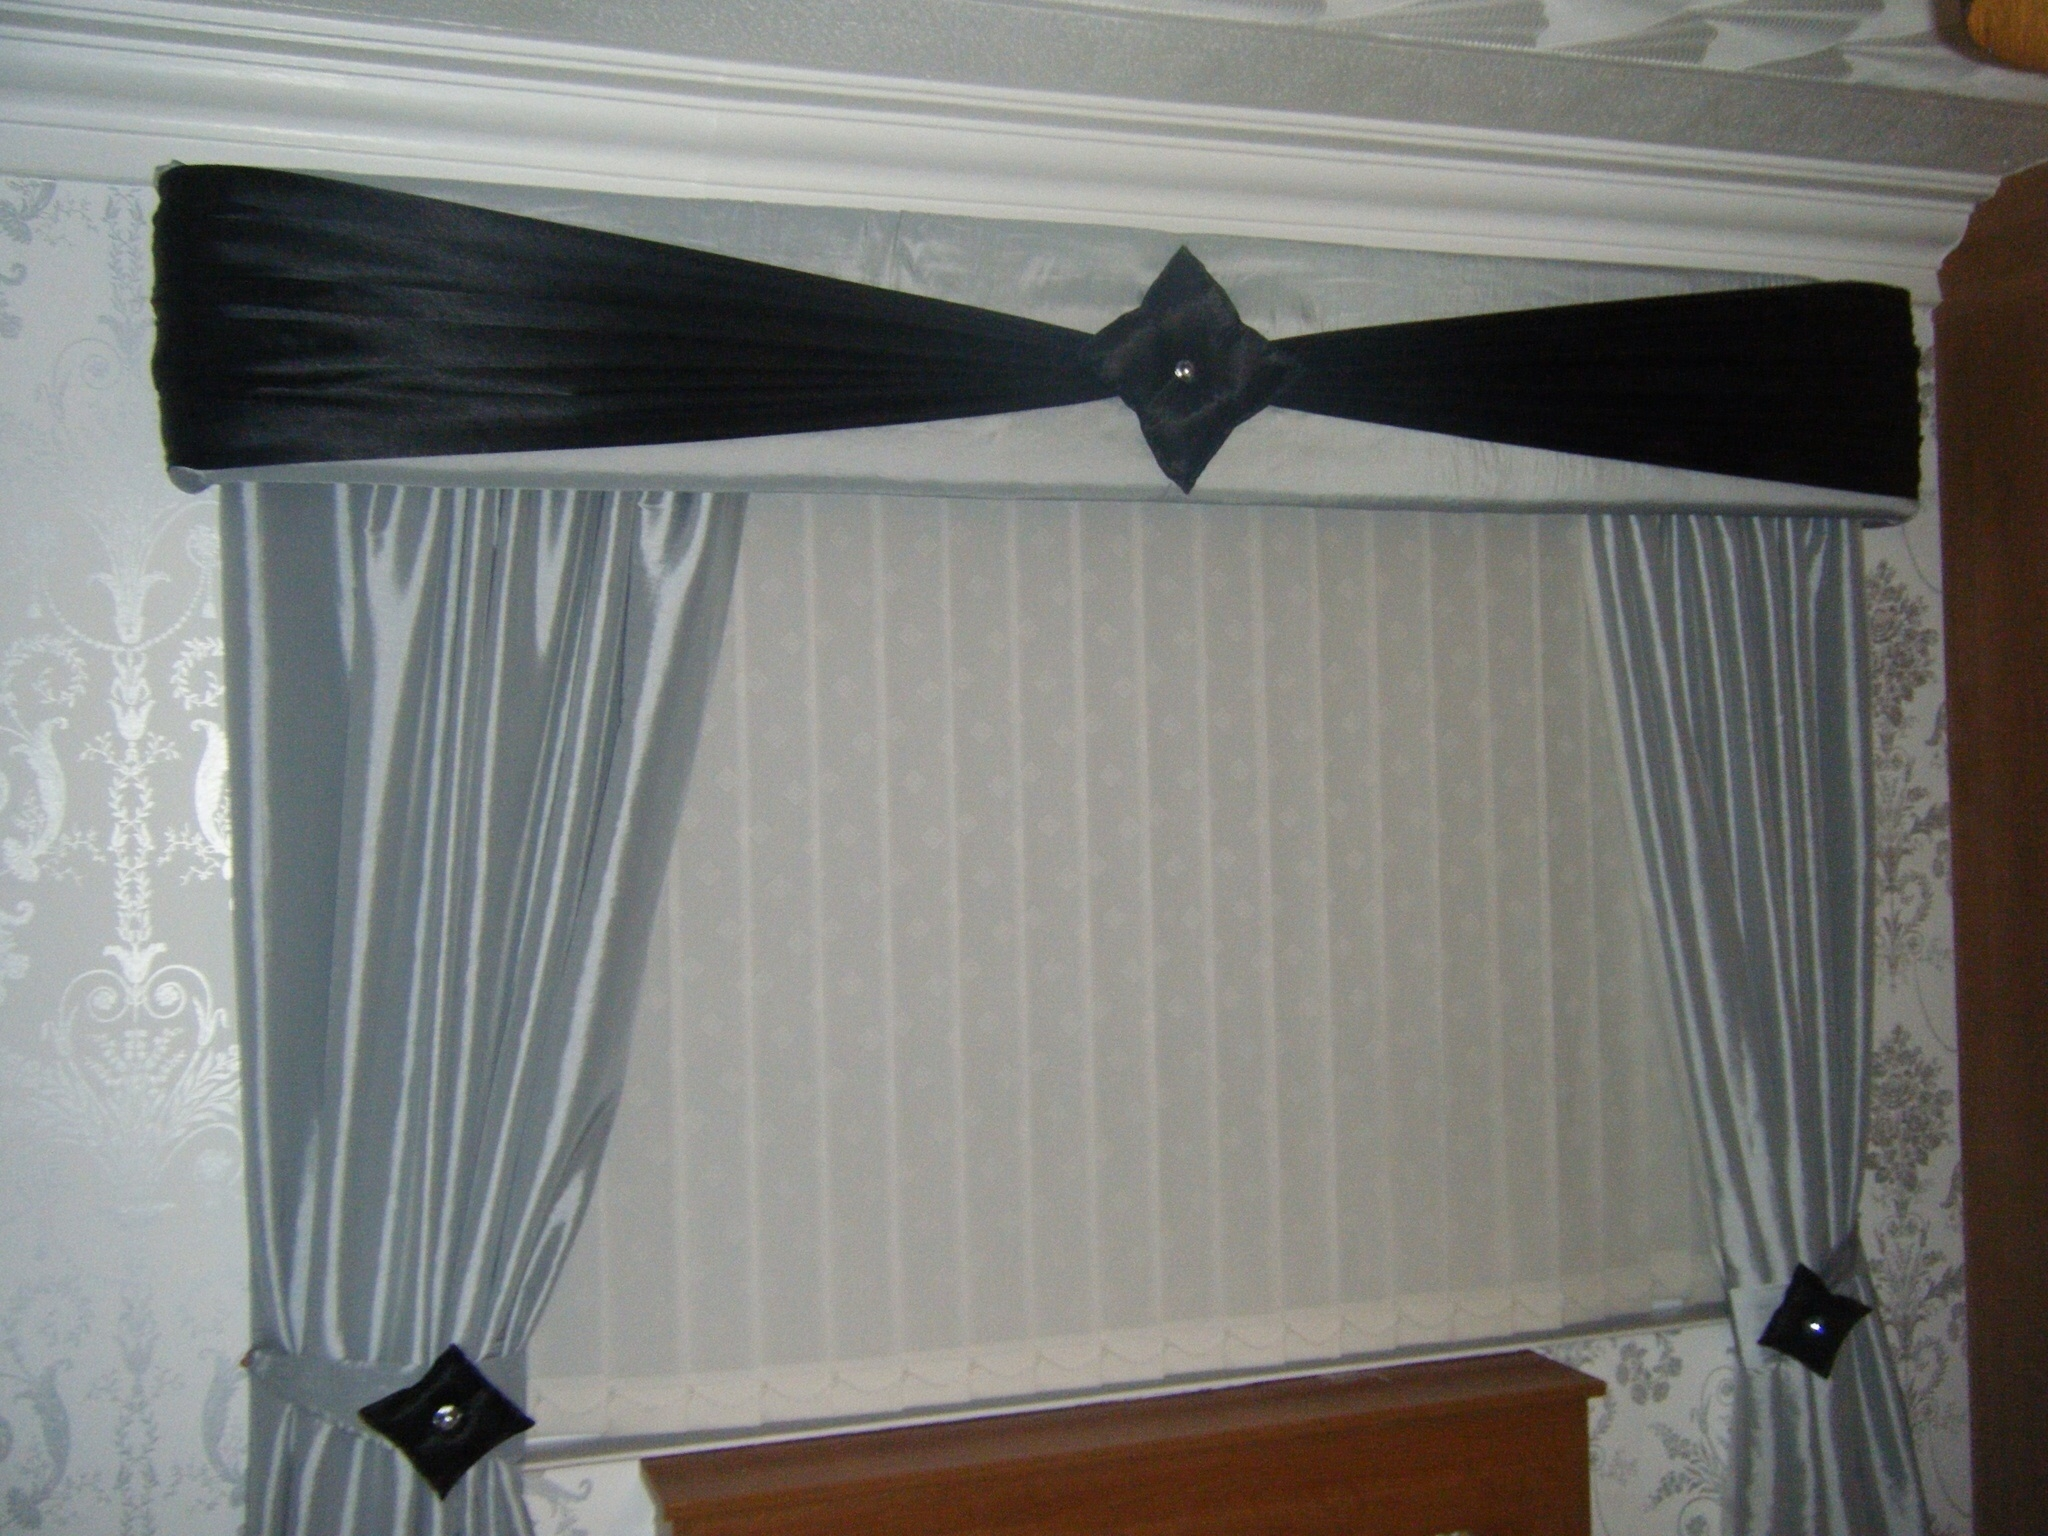 Beautiful Handmade Curtains Pelmets Tie Backs My Curtains With Hand Made Curtains (View 8 of 15)